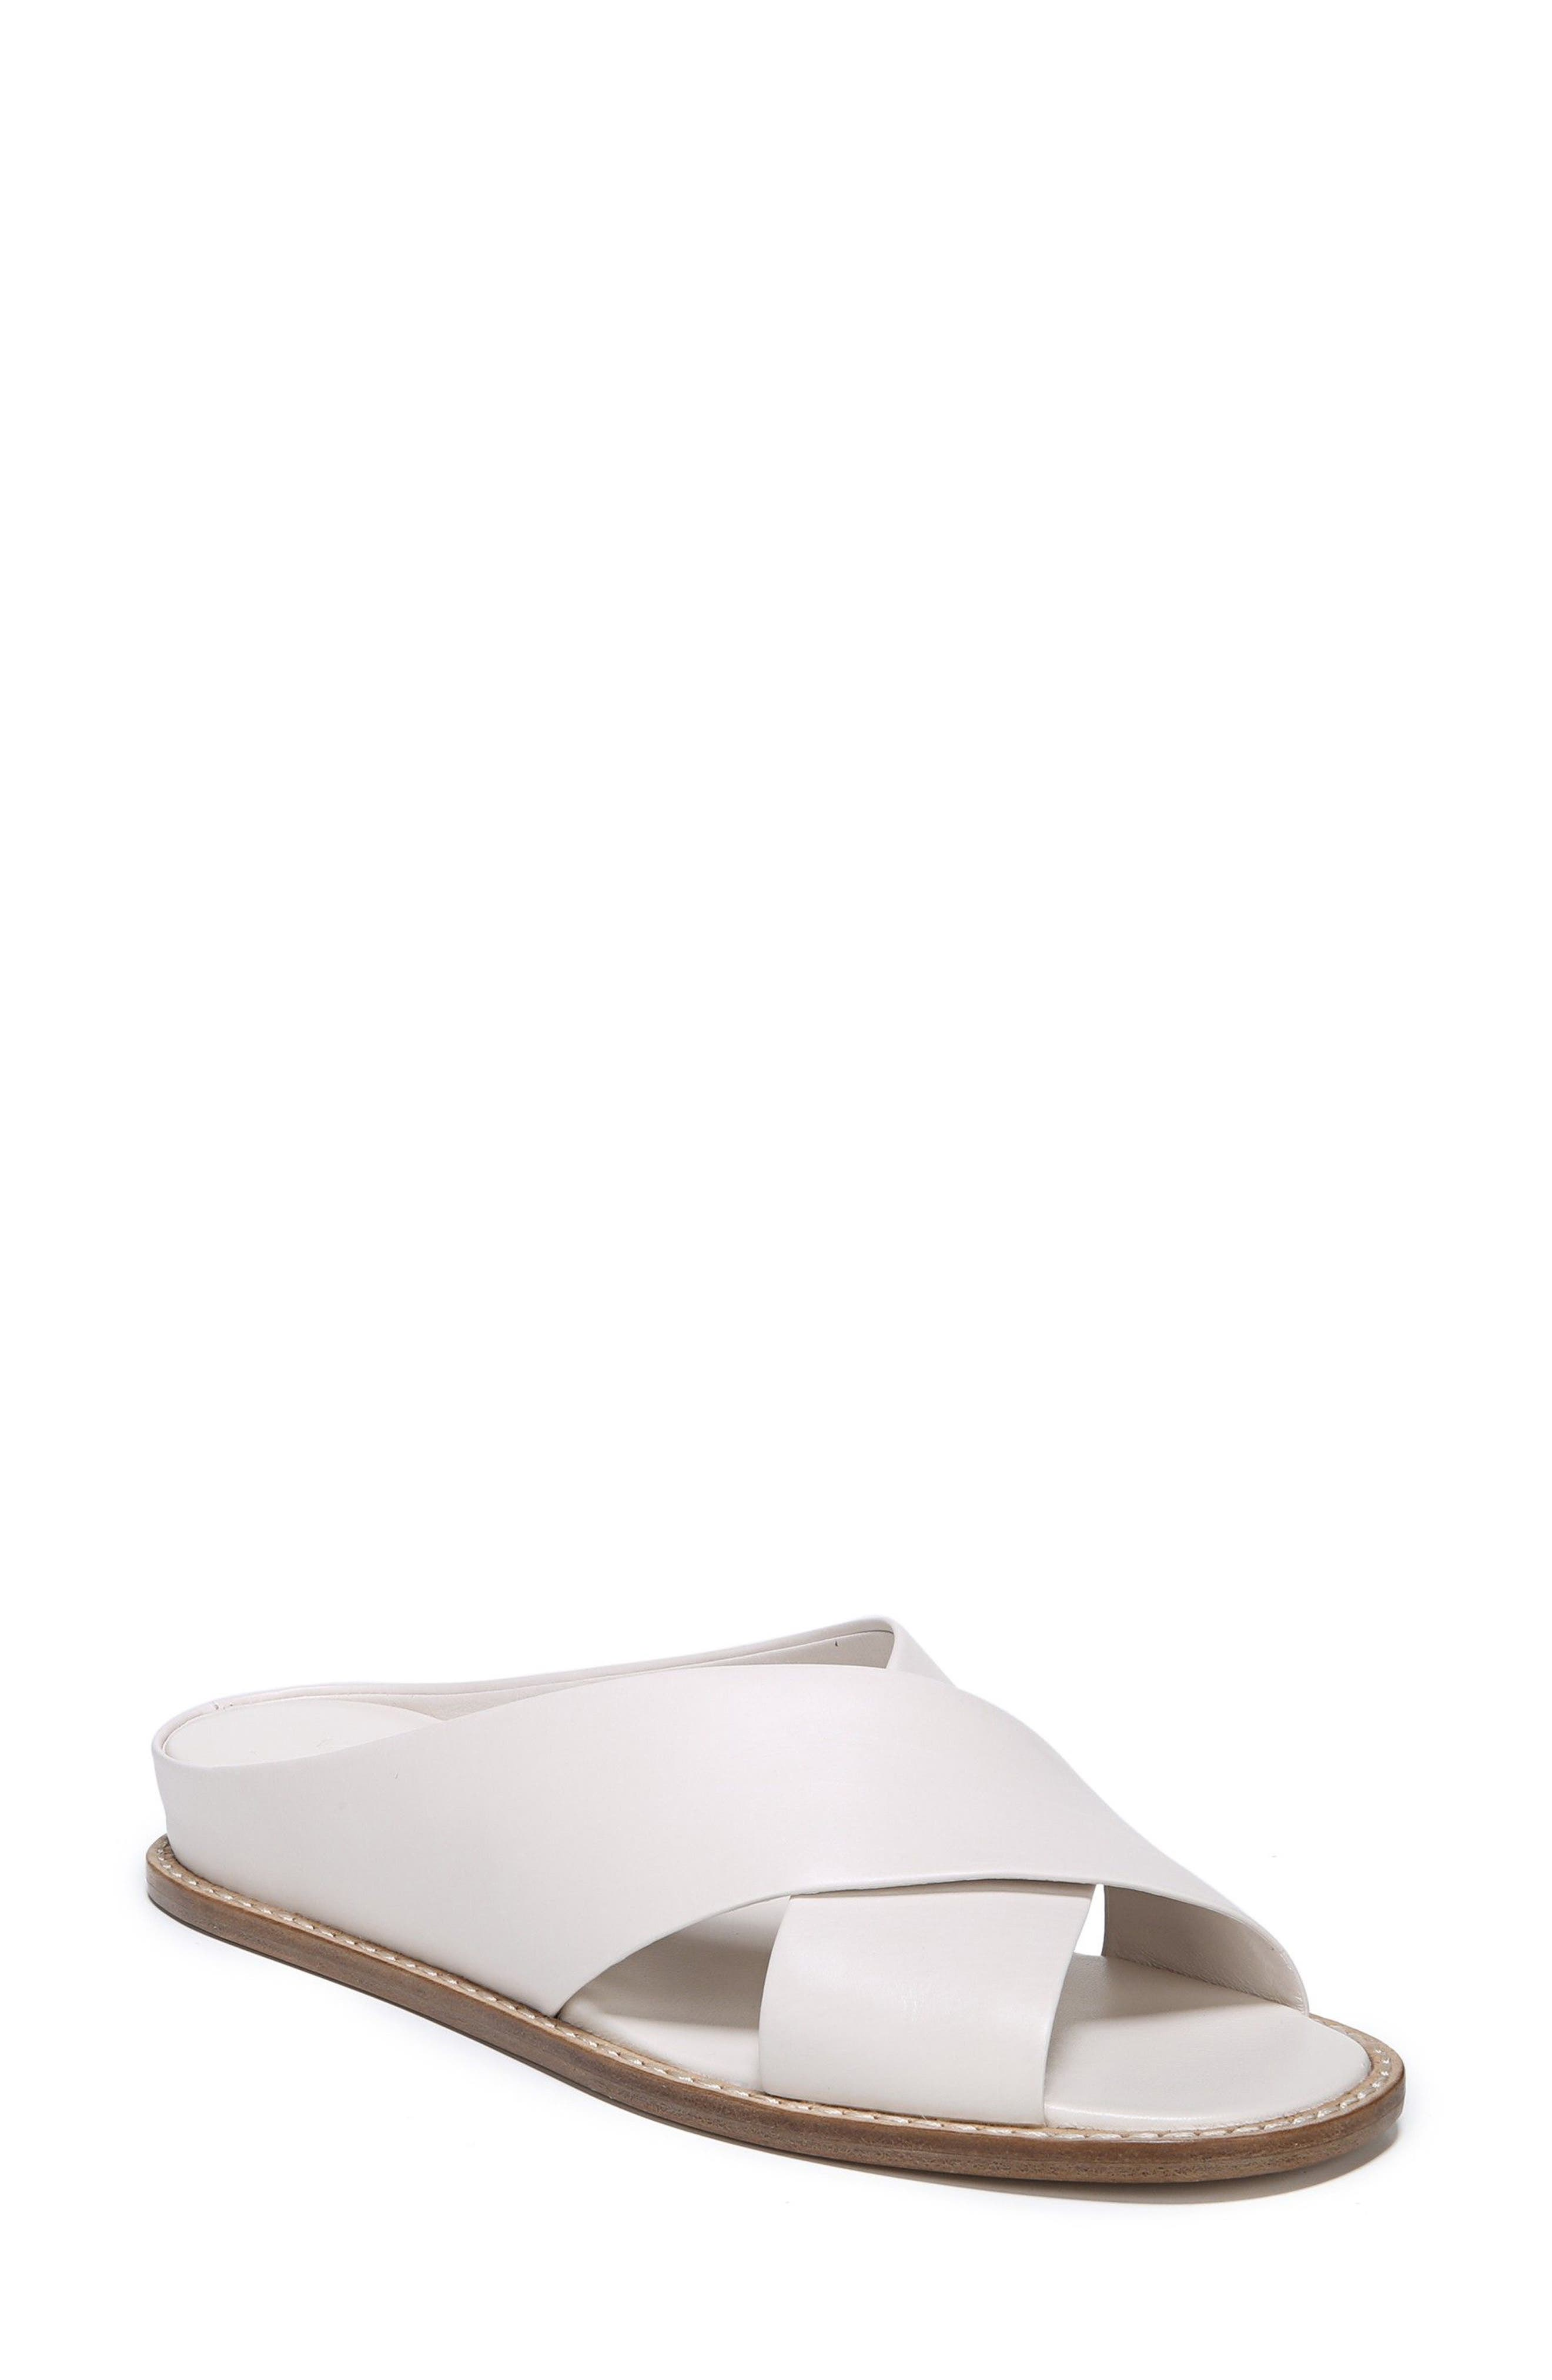 Fairley Cross Strap Sandal, Main, color, OFF WHITE LEATHER